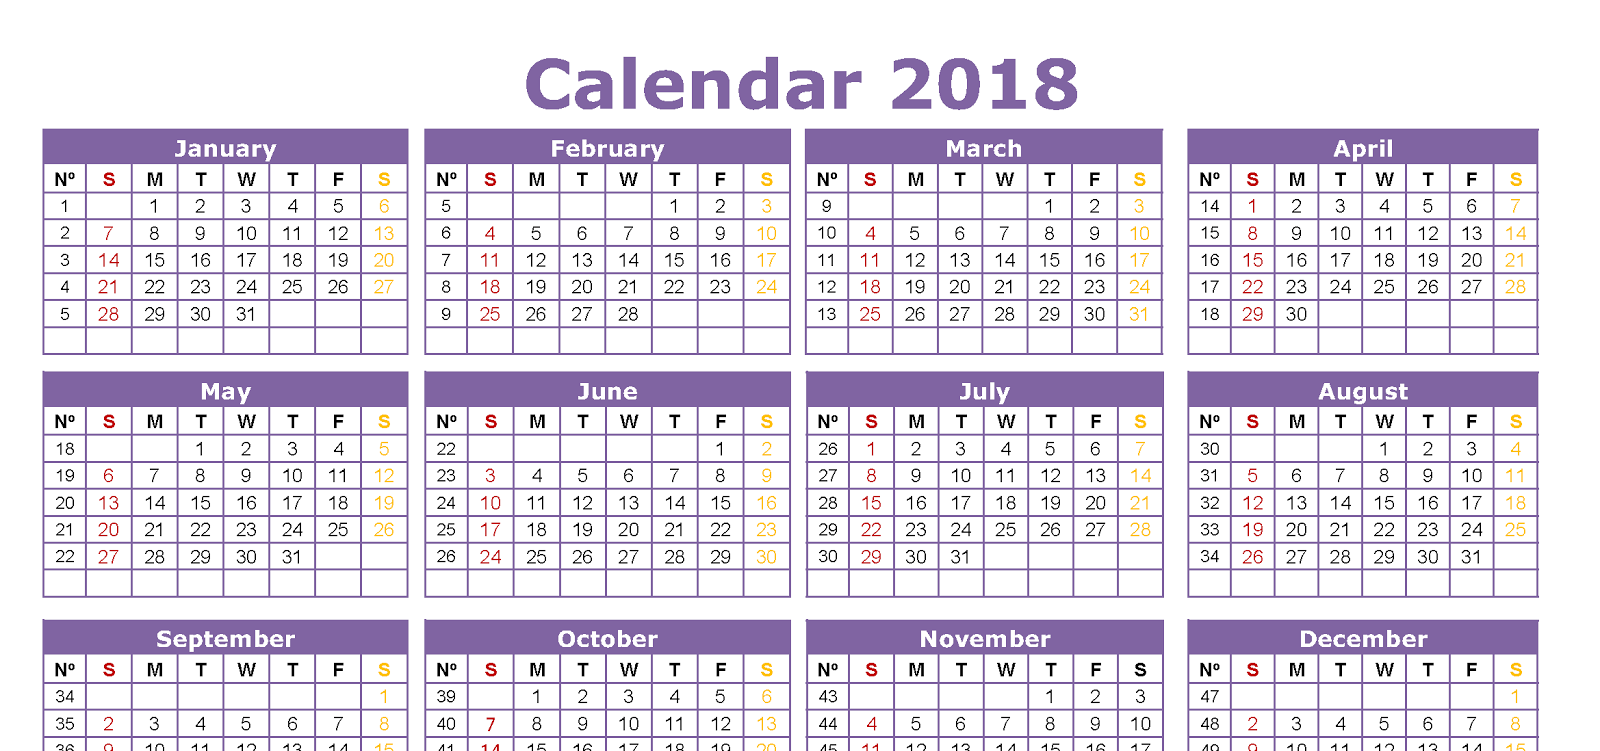 Hindi Calendar 2018 with Festivals and Holidays